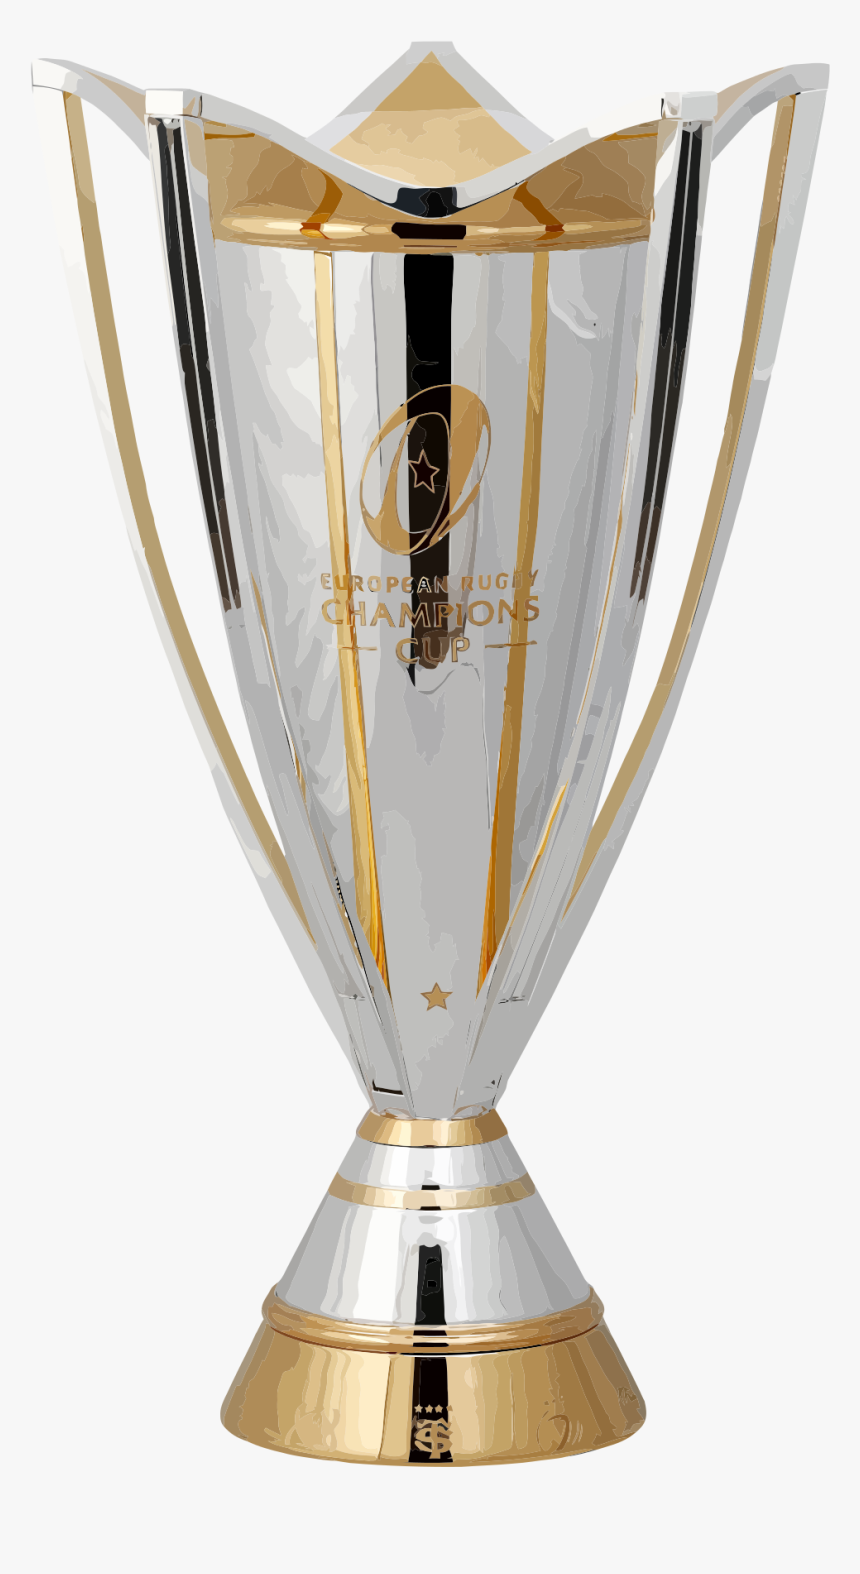 European Rugby Champions Cup Trophy, HD Png Download, Free Download